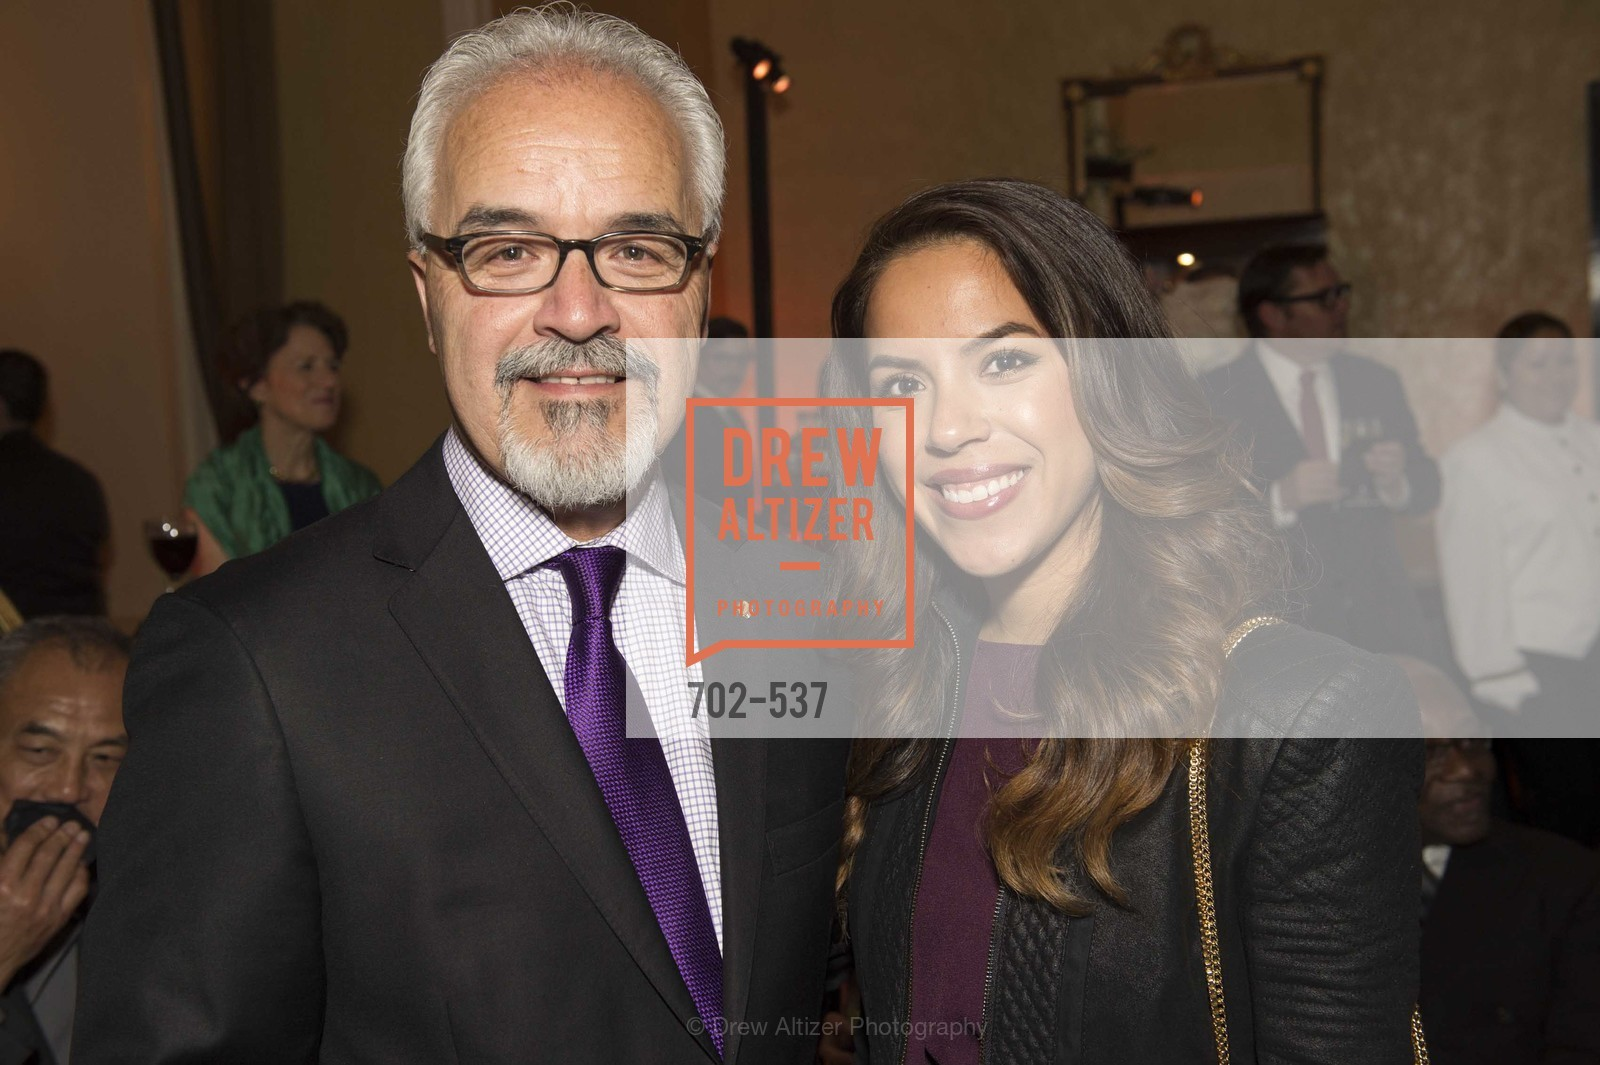 Dan Sotelo, Bianca Sotelo, TOP OF THE MARK'S 75TH Anniversary Party, US, November 7th, 2014,Drew Altizer, Drew Altizer Photography, full-service agency, private events, San Francisco photographer, photographer california